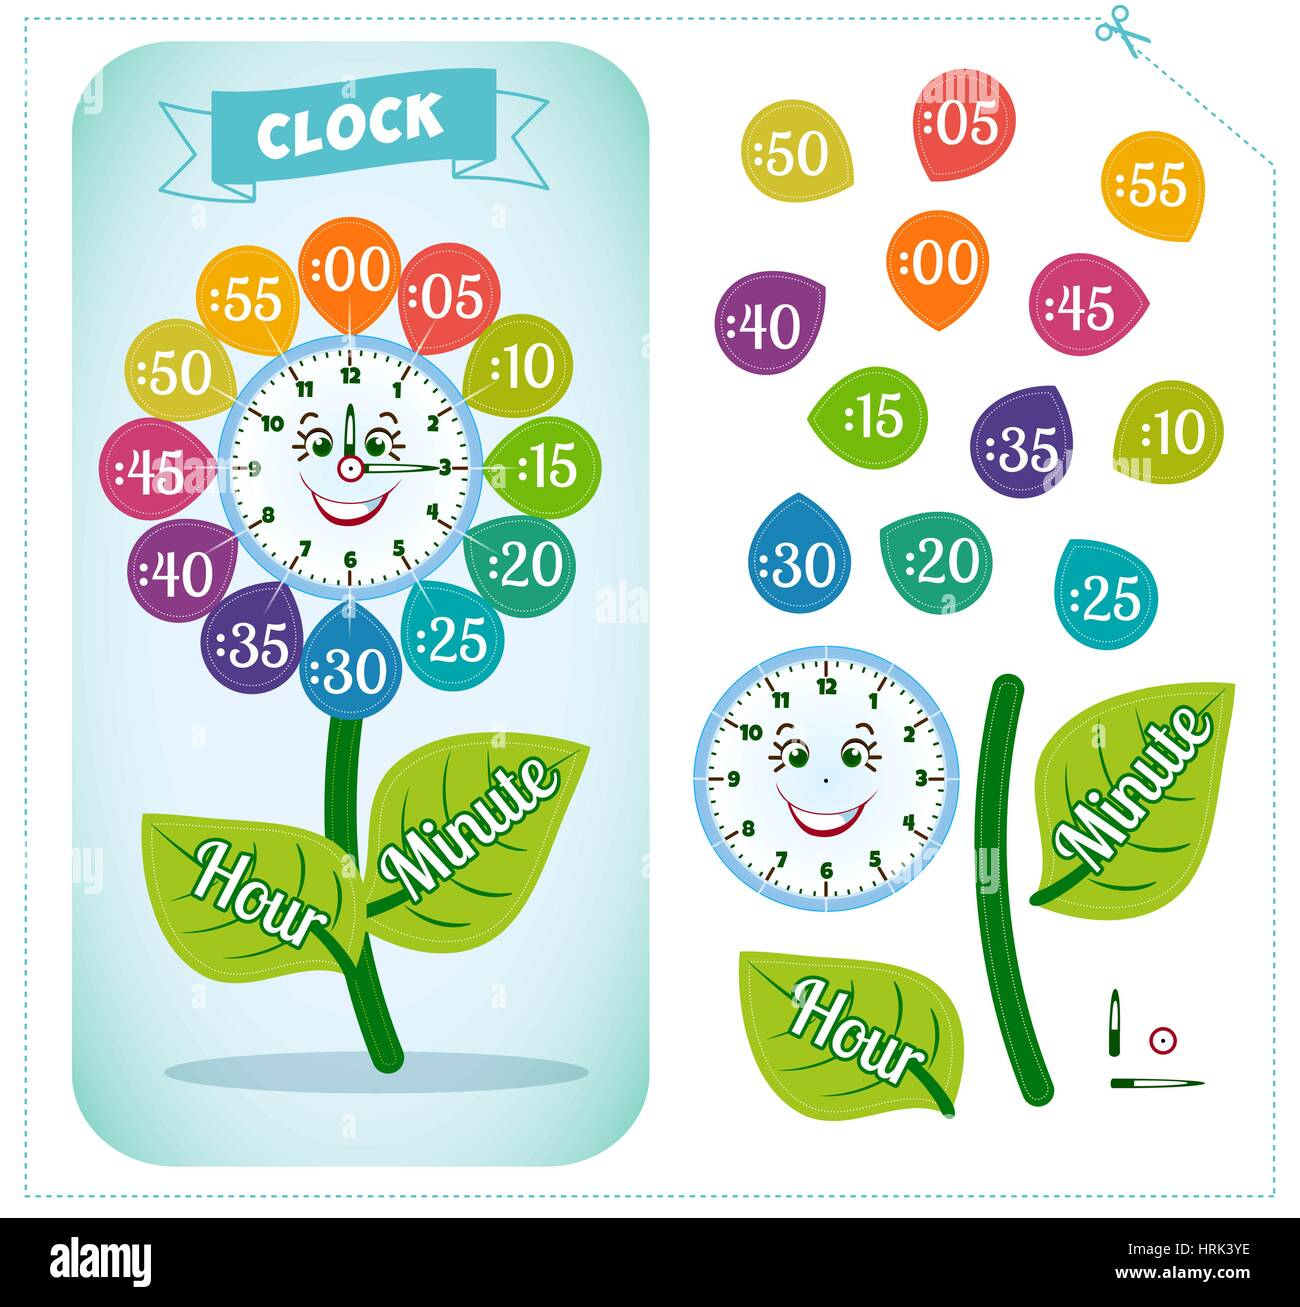 hight resolution of Telling time worksheet for school kids to identify the time. Clock Stock  Vector Image \u0026 Art - Alamy